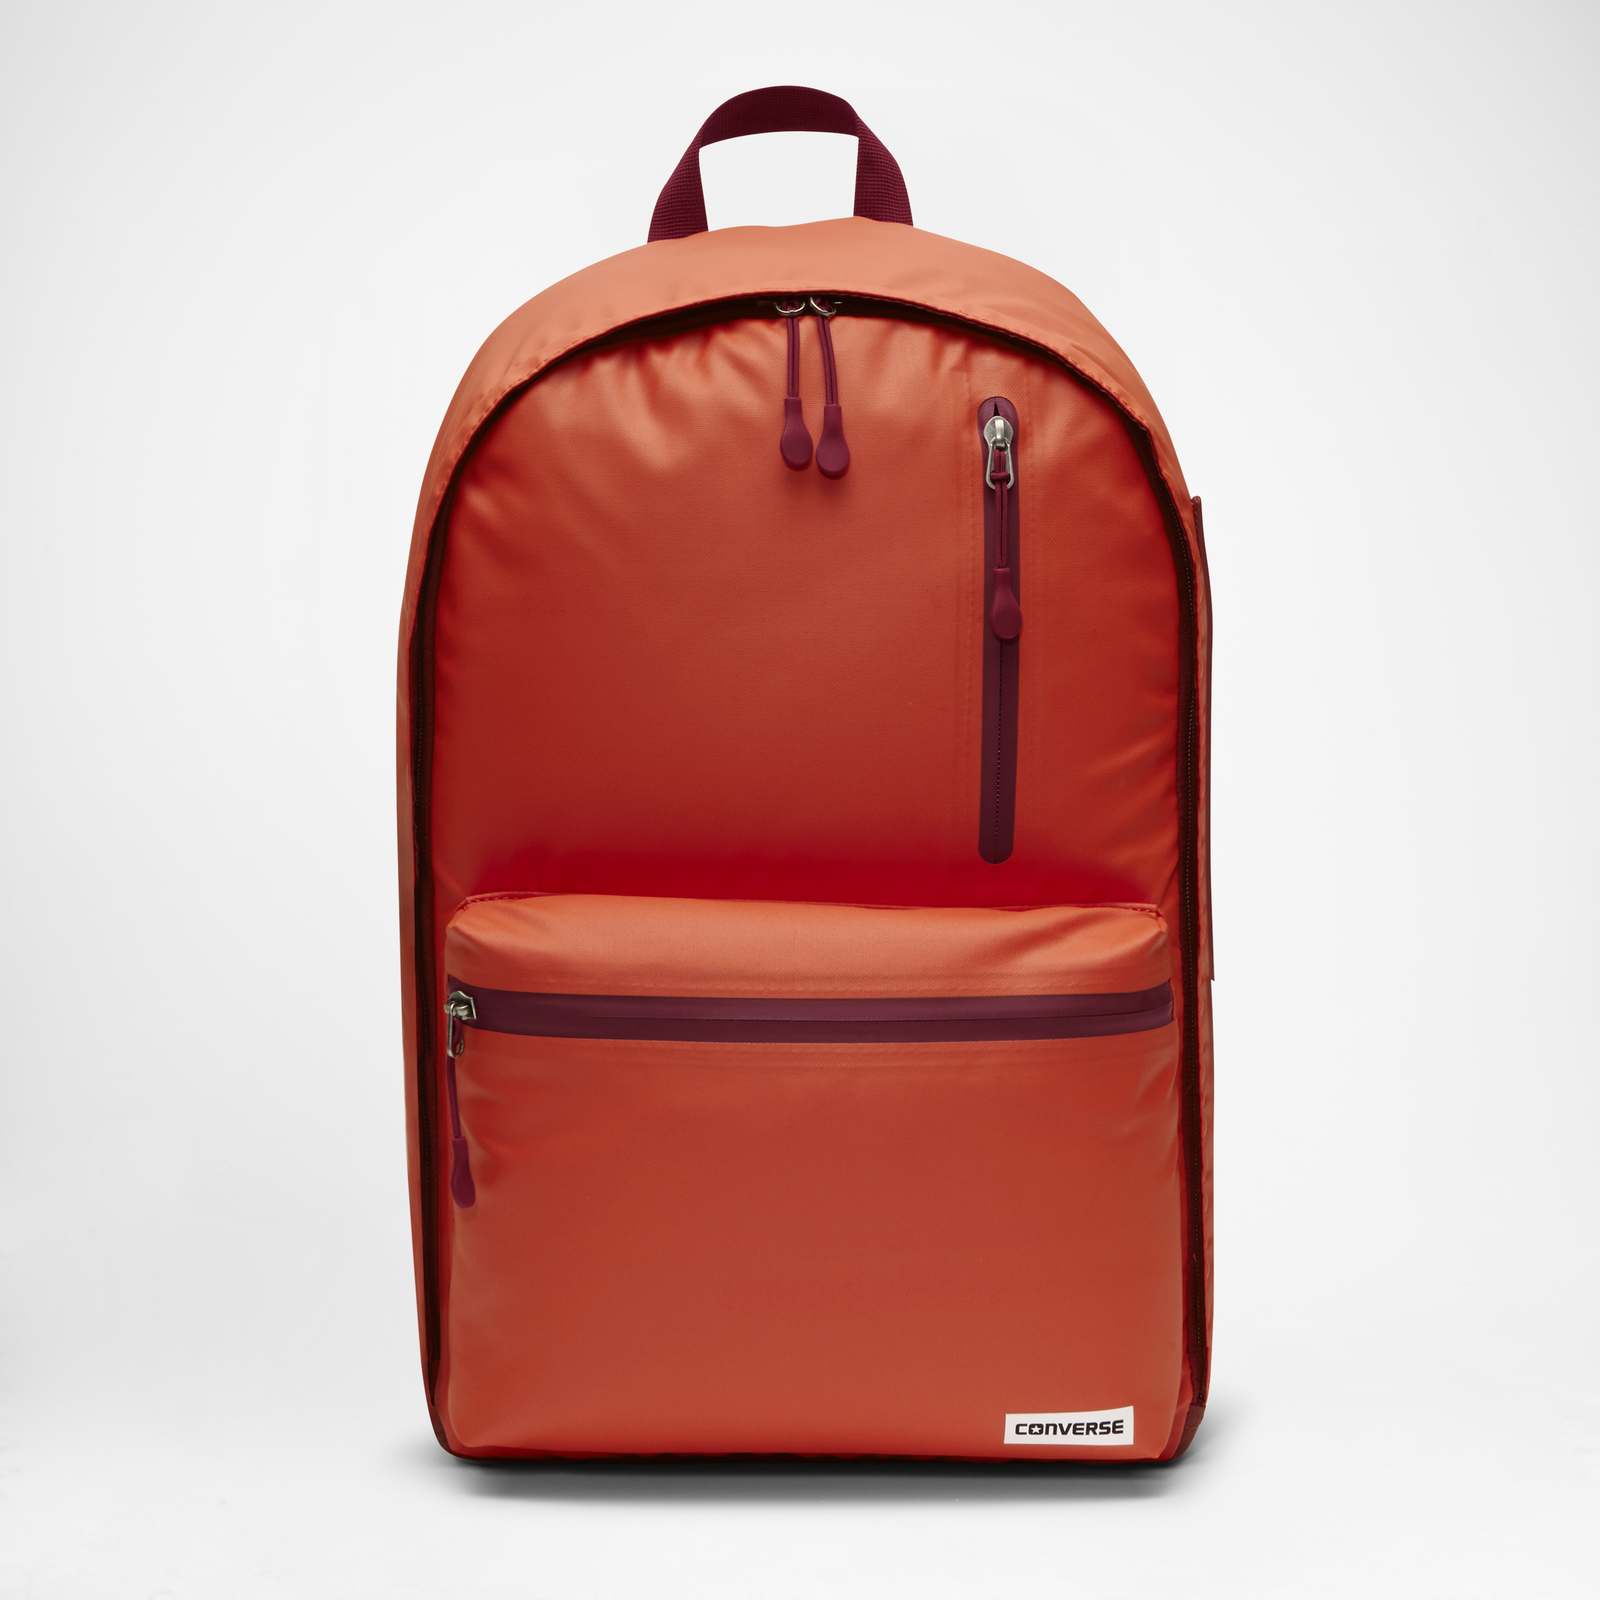 Backpack in Single Red